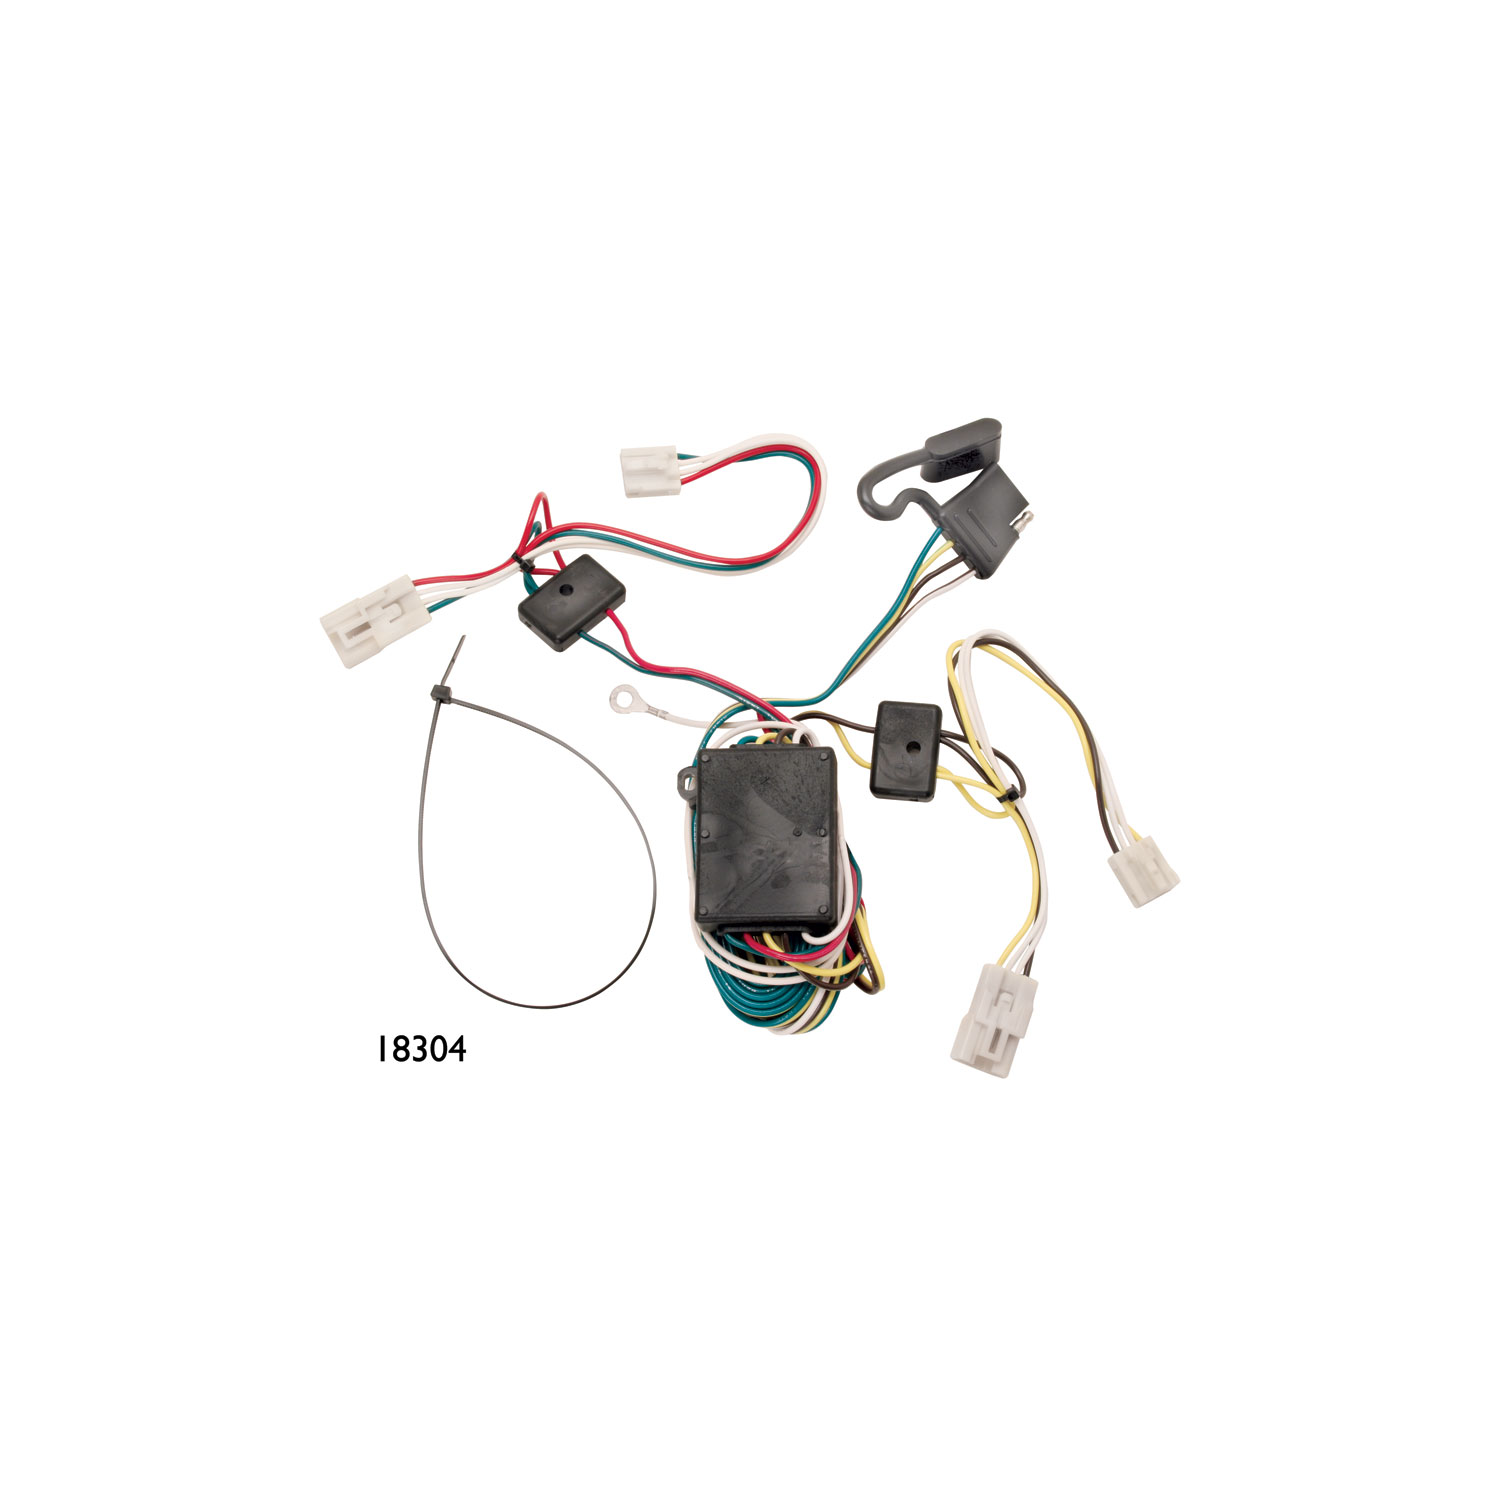 118392 Tekonsha Trailer Wiring Connector 4 Way Flat Replacement For 118304